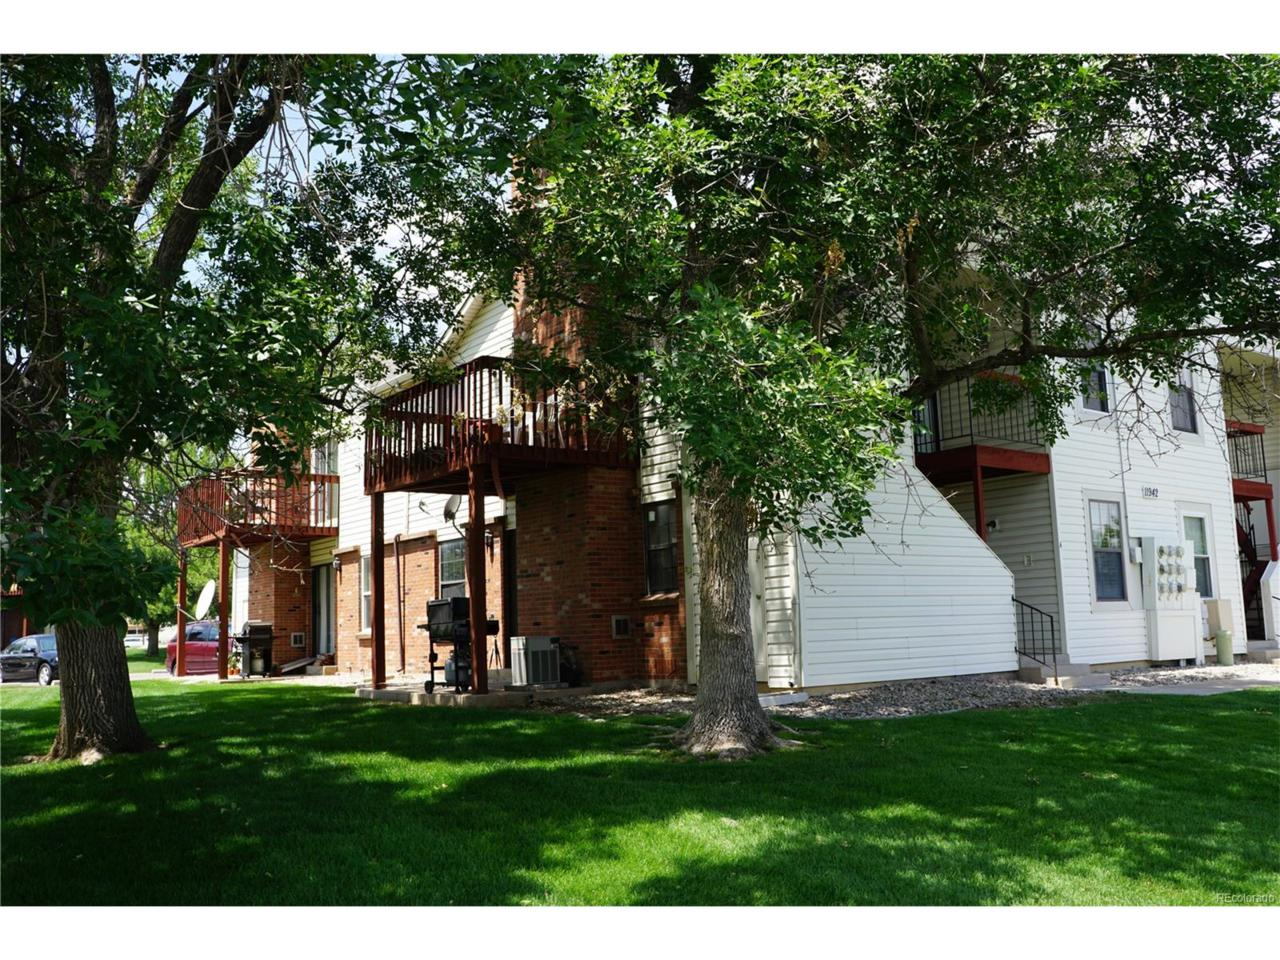 11942 Bellaire Street A, Thornton, CO 80233 (MLS #6229415) :: 8z Real Estate